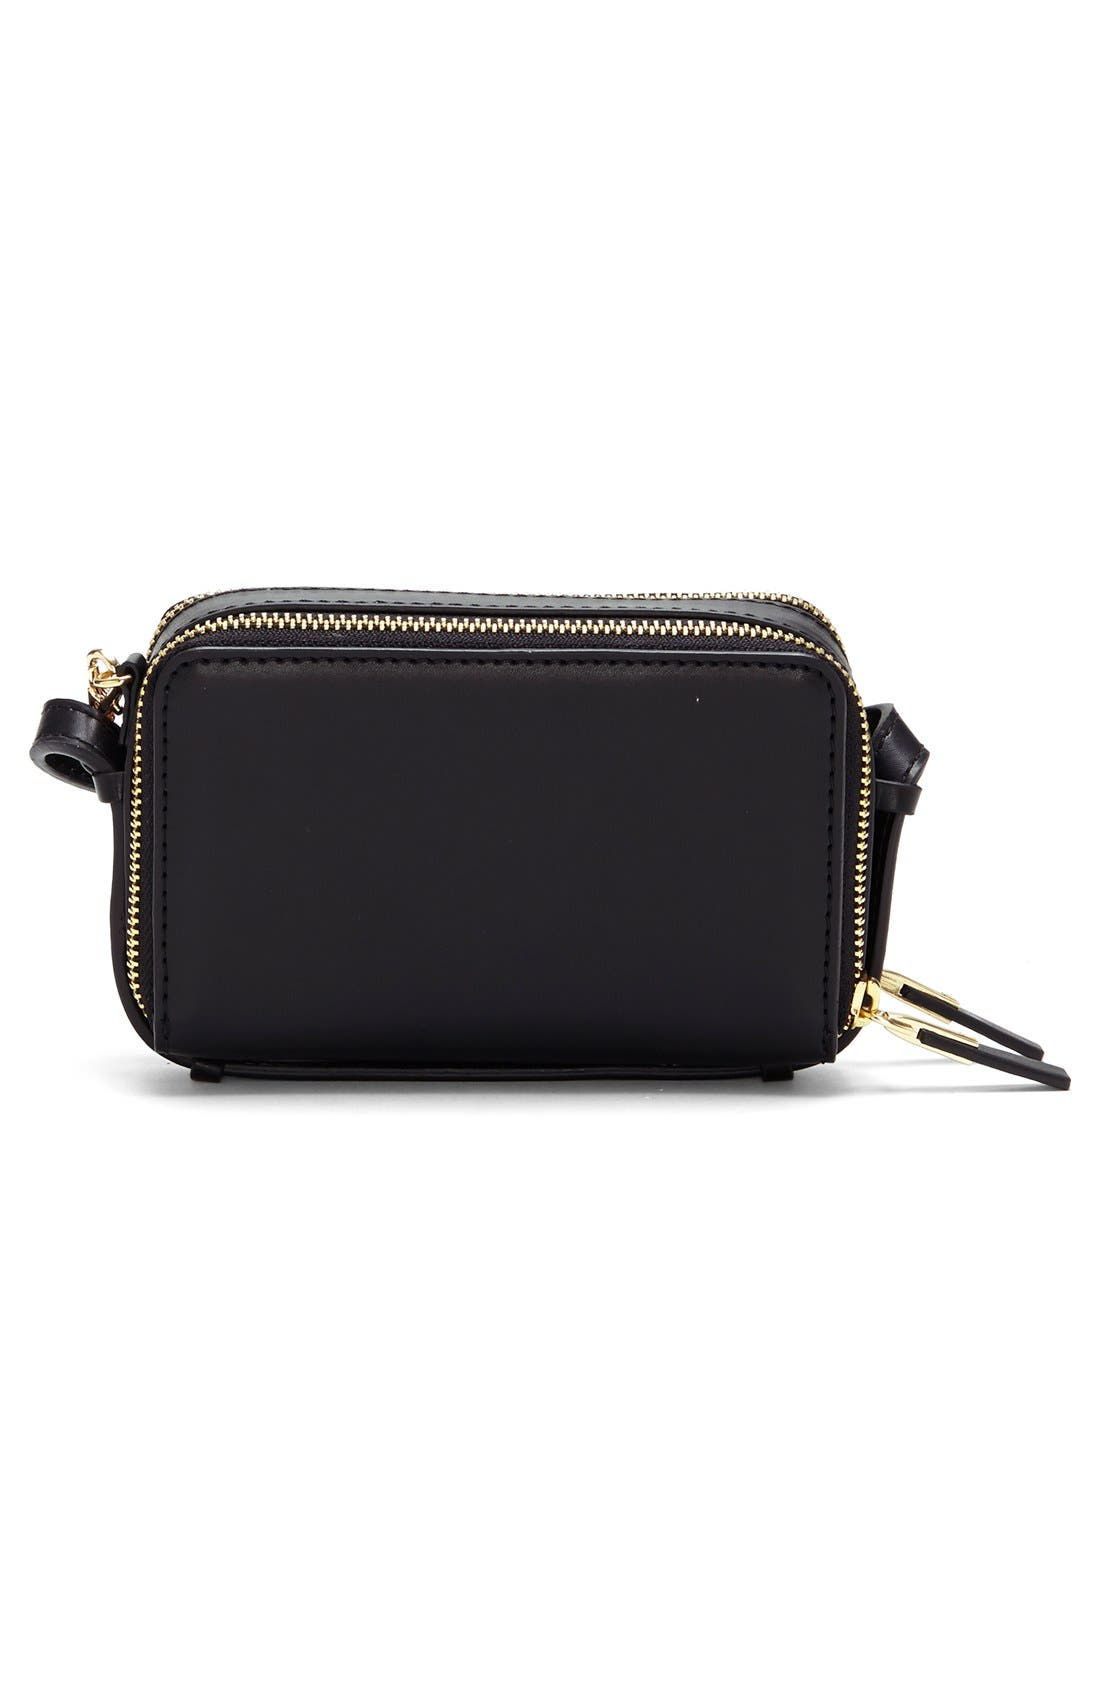 Alternate Image 2  - Vince Camuto 'Brena - Small' Leather Crossbody Bag